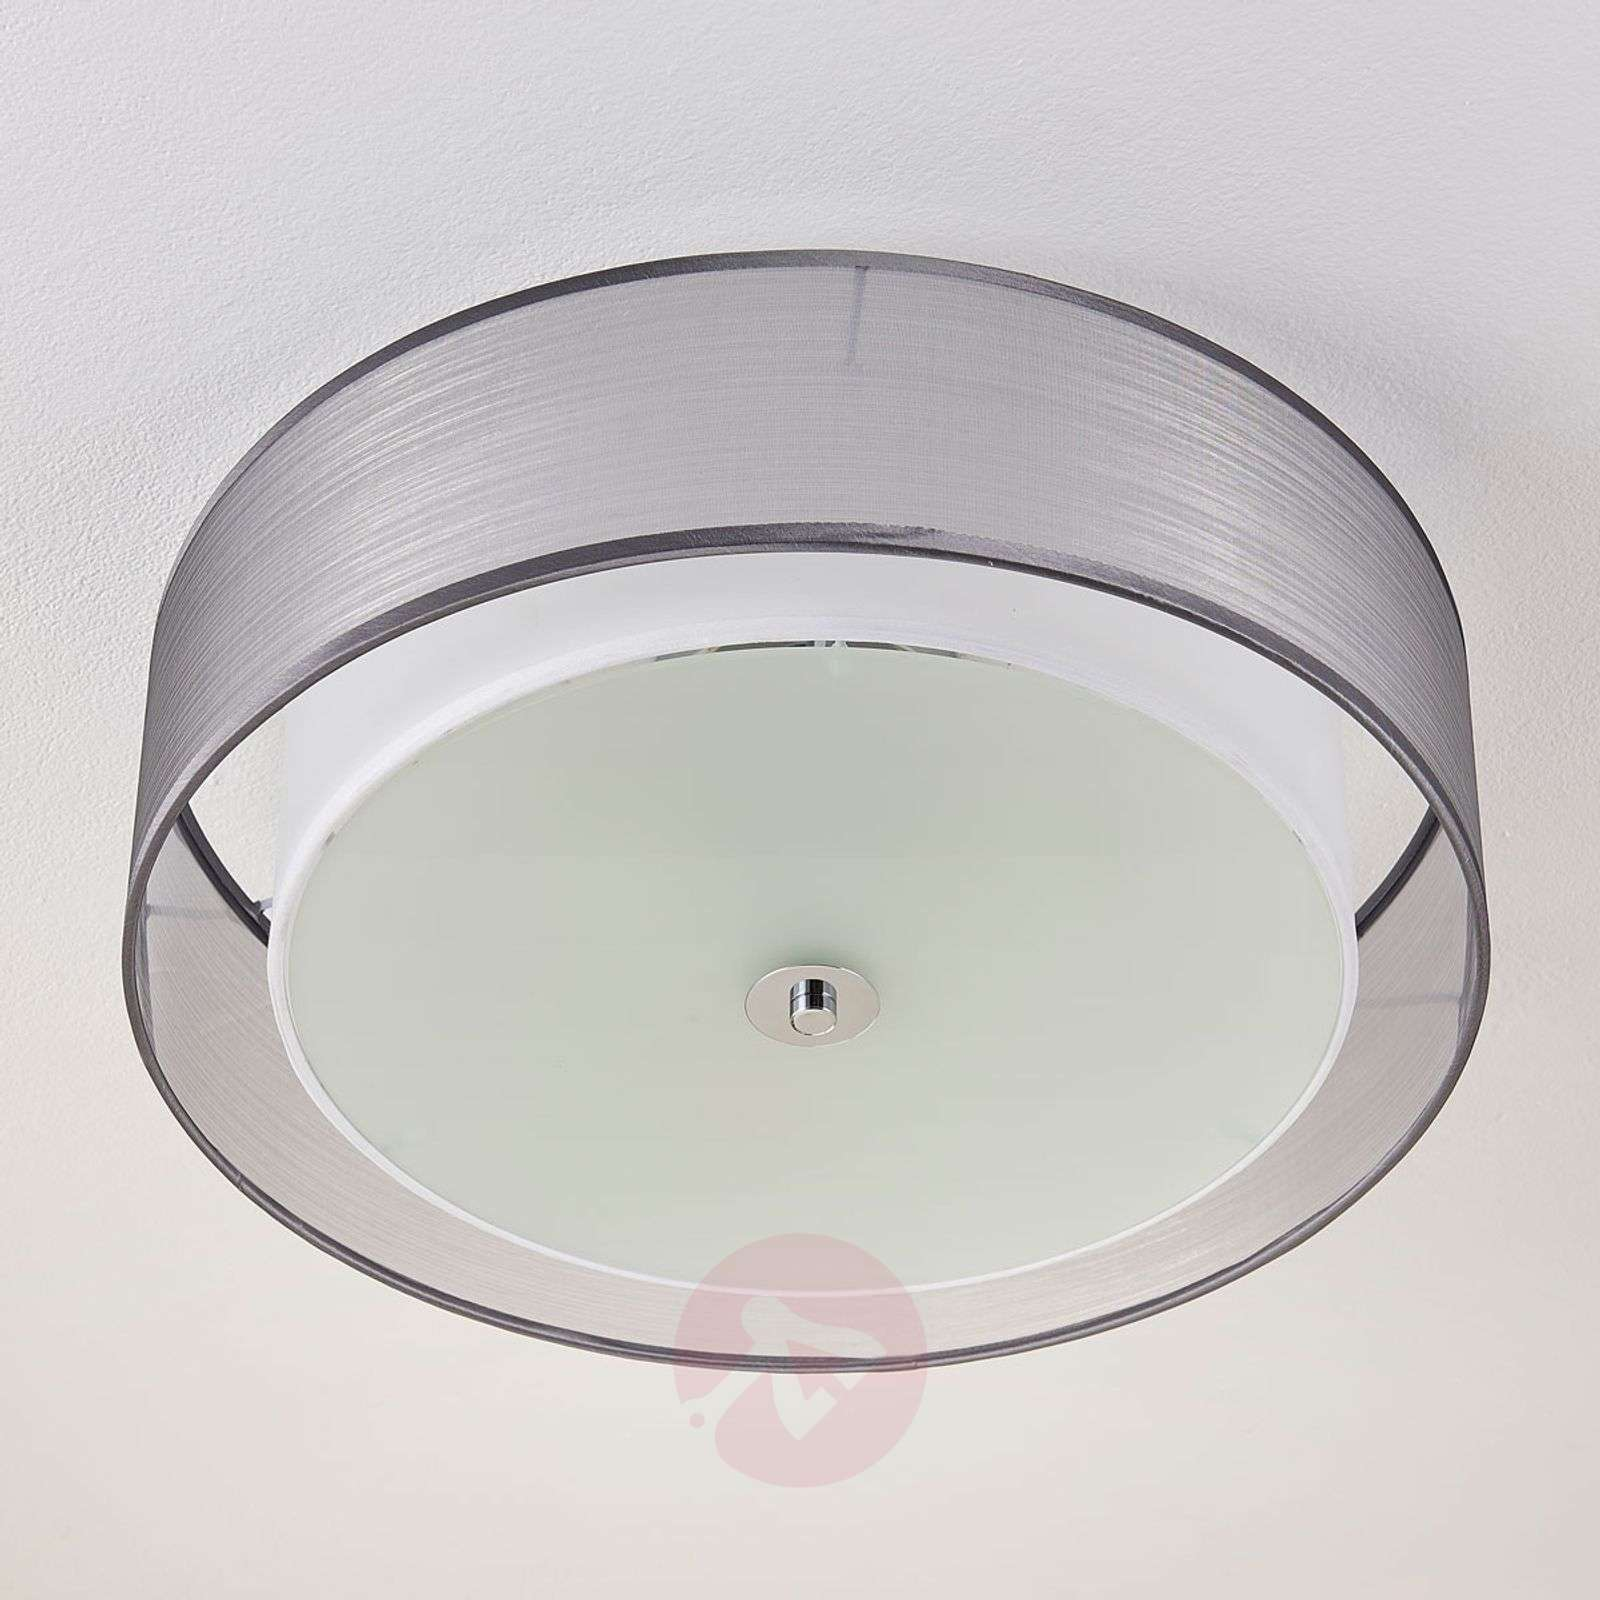 LED ceiling lamp Tobia dimmable by a switch, grey-9621293-02